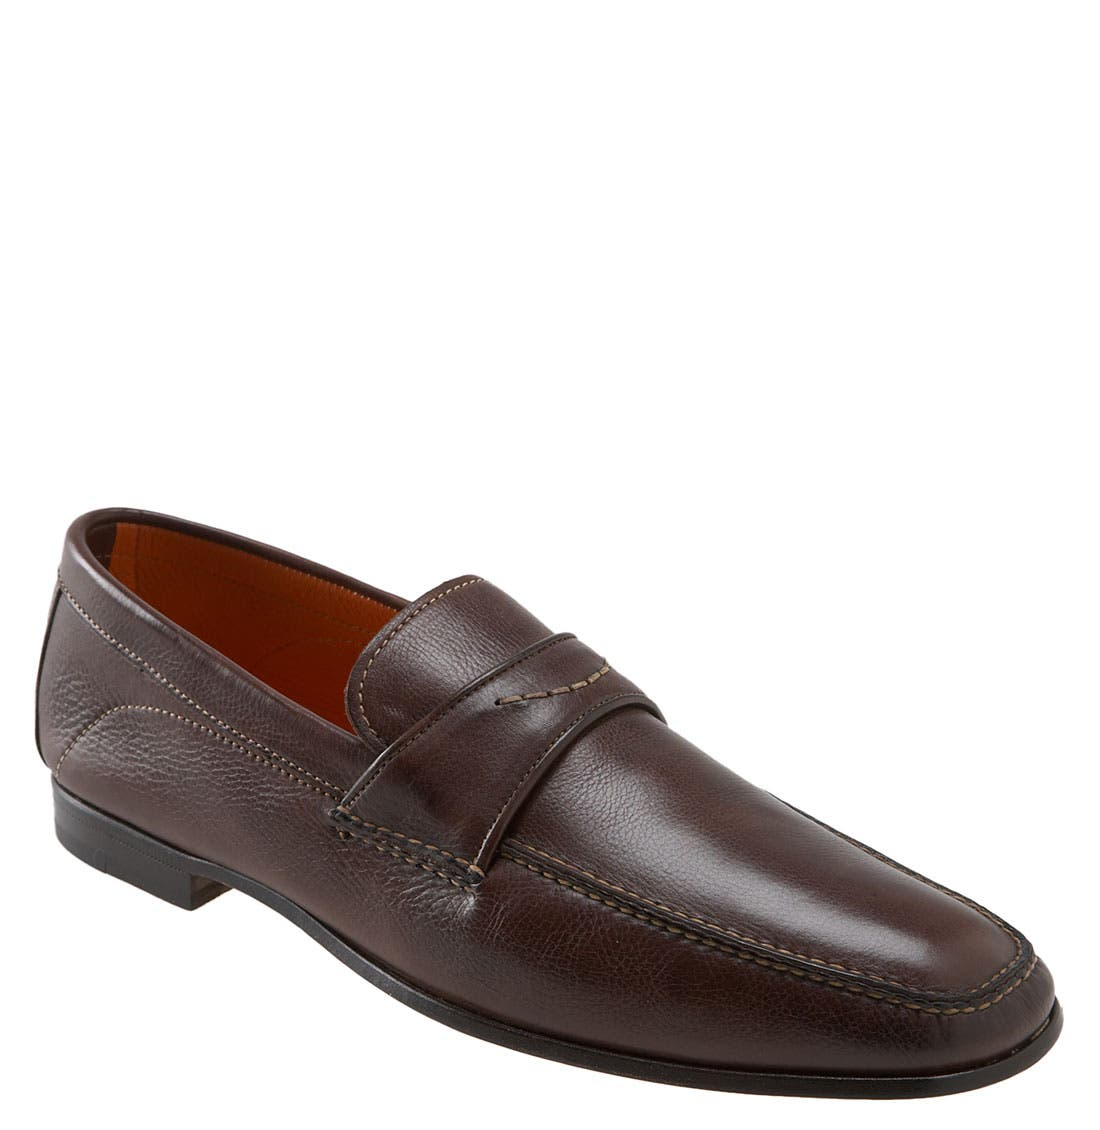 Main Image - Santoni 'Jericho' Slip-On